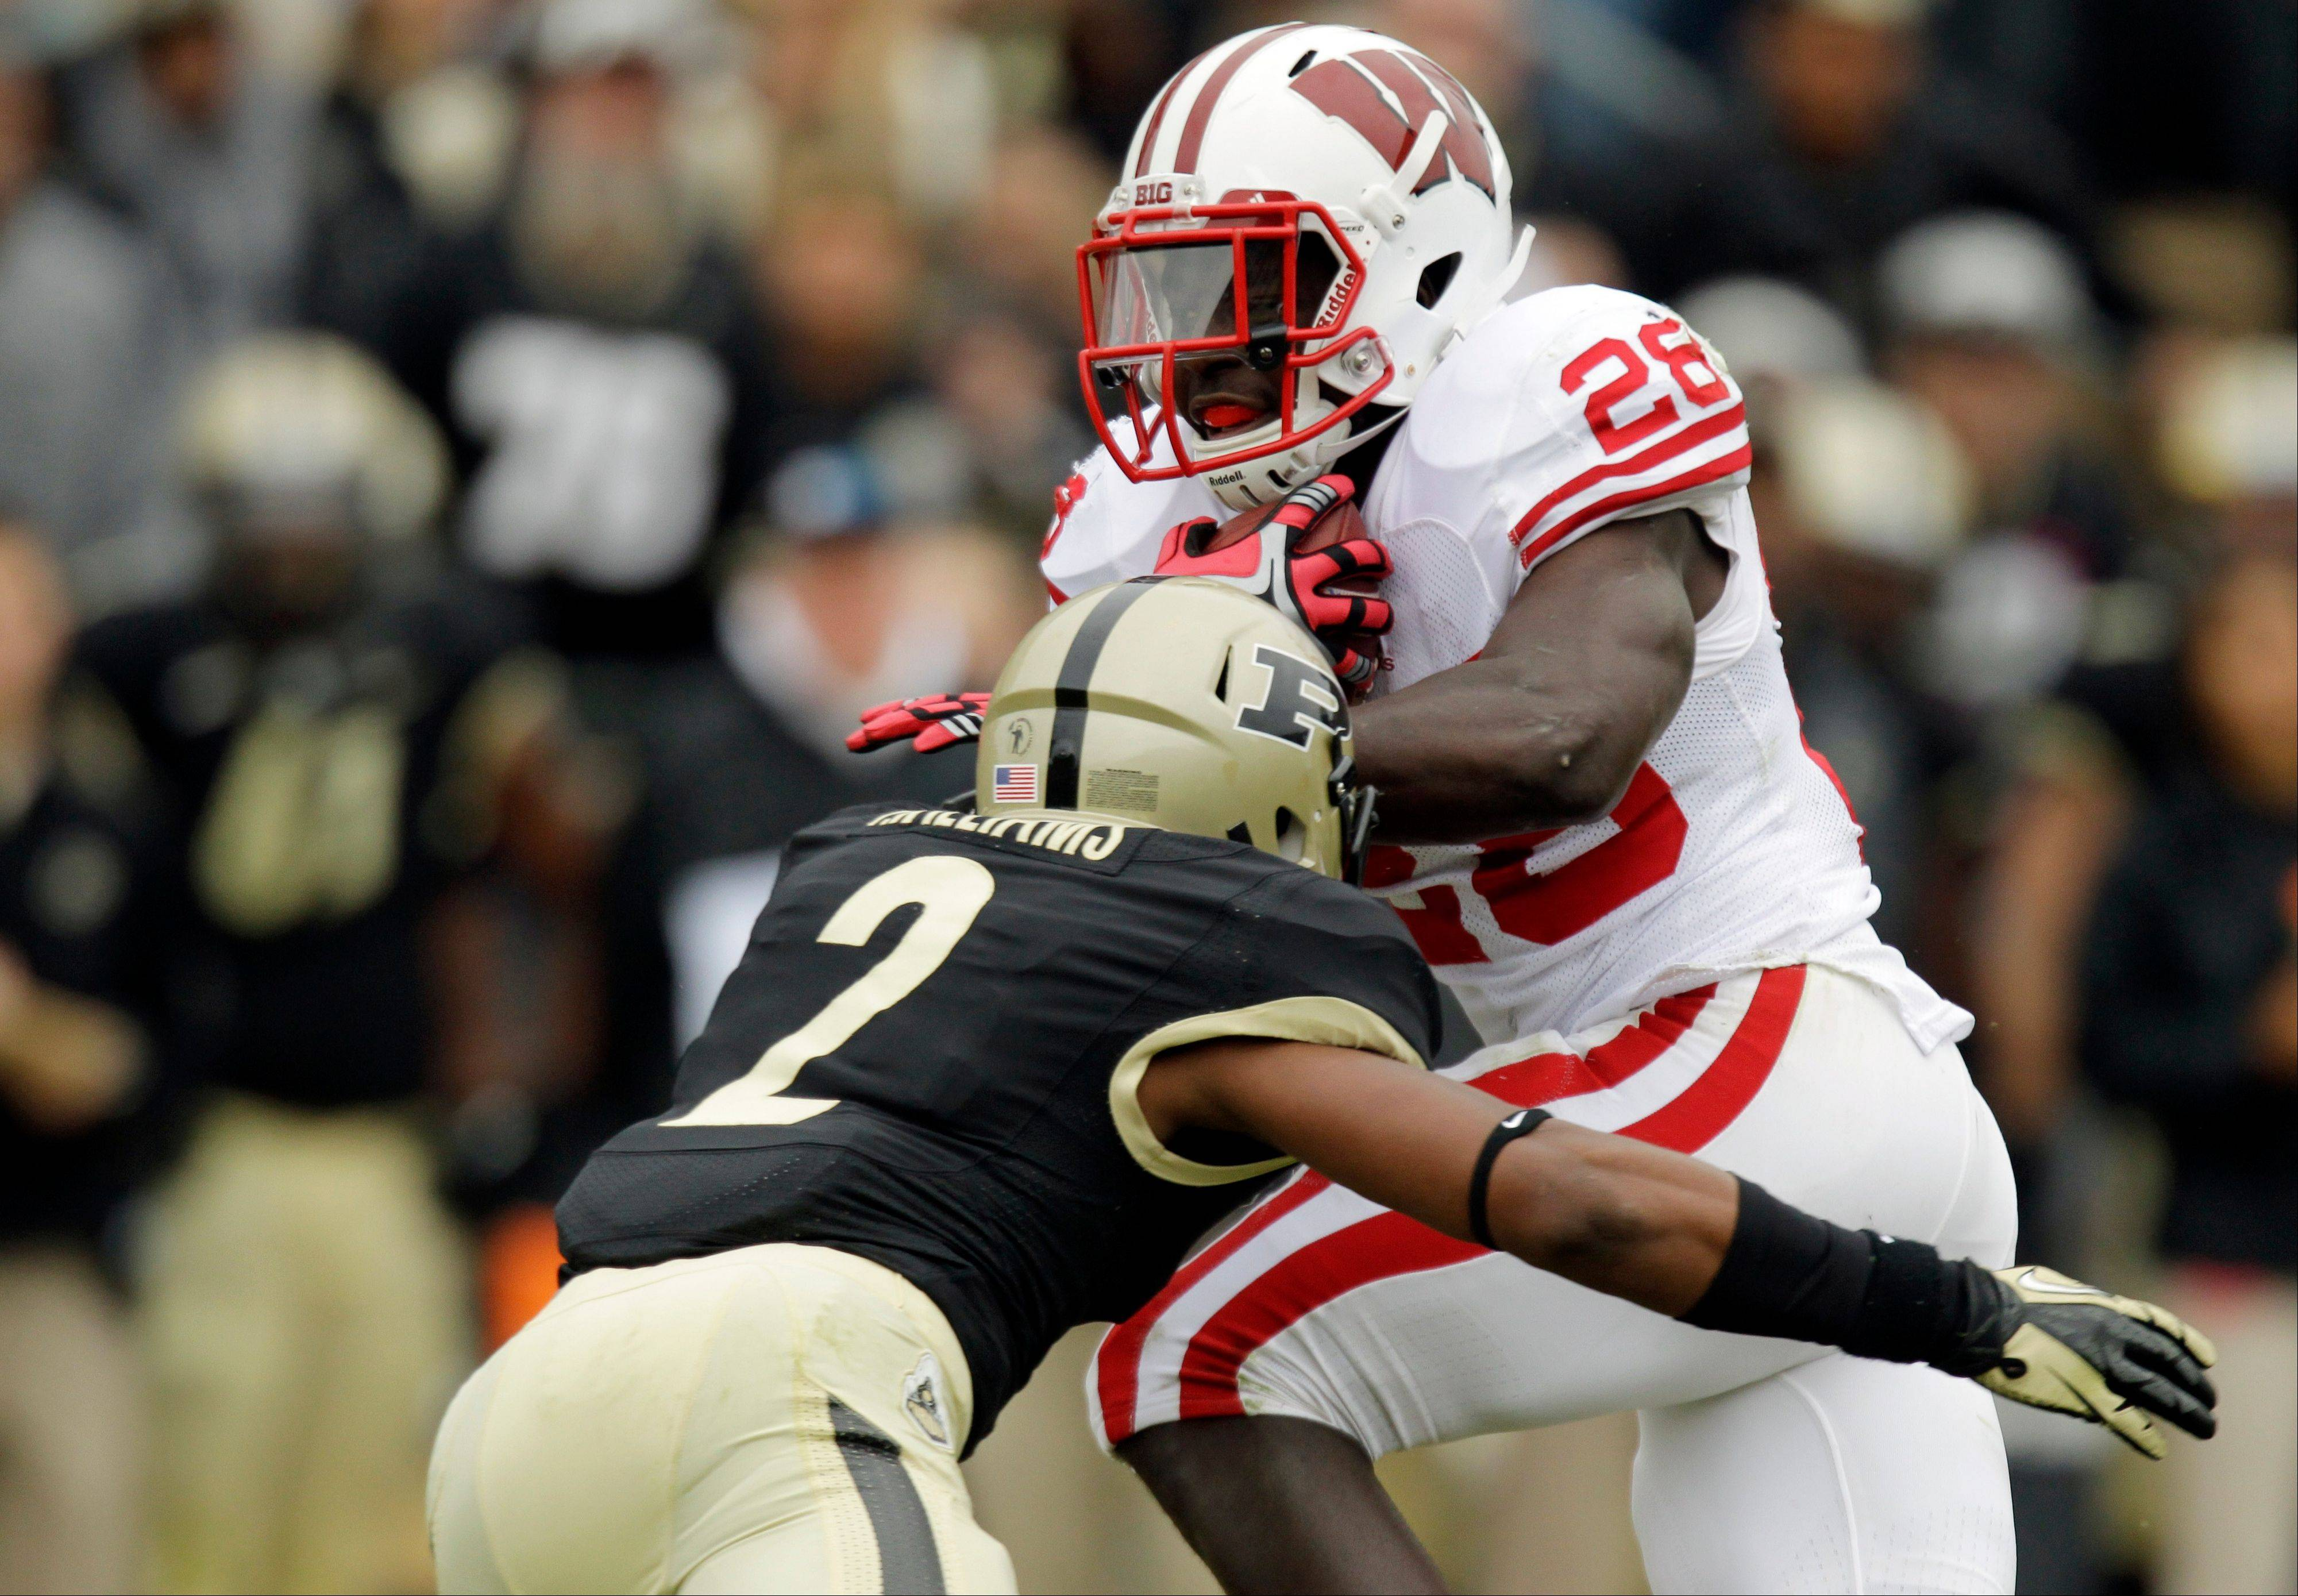 Wisconsin running back Montee Ball runs through the tackle of Purdue defensive back Frankie Williams during the first half in West Lafayette, Ind., earlier this season.